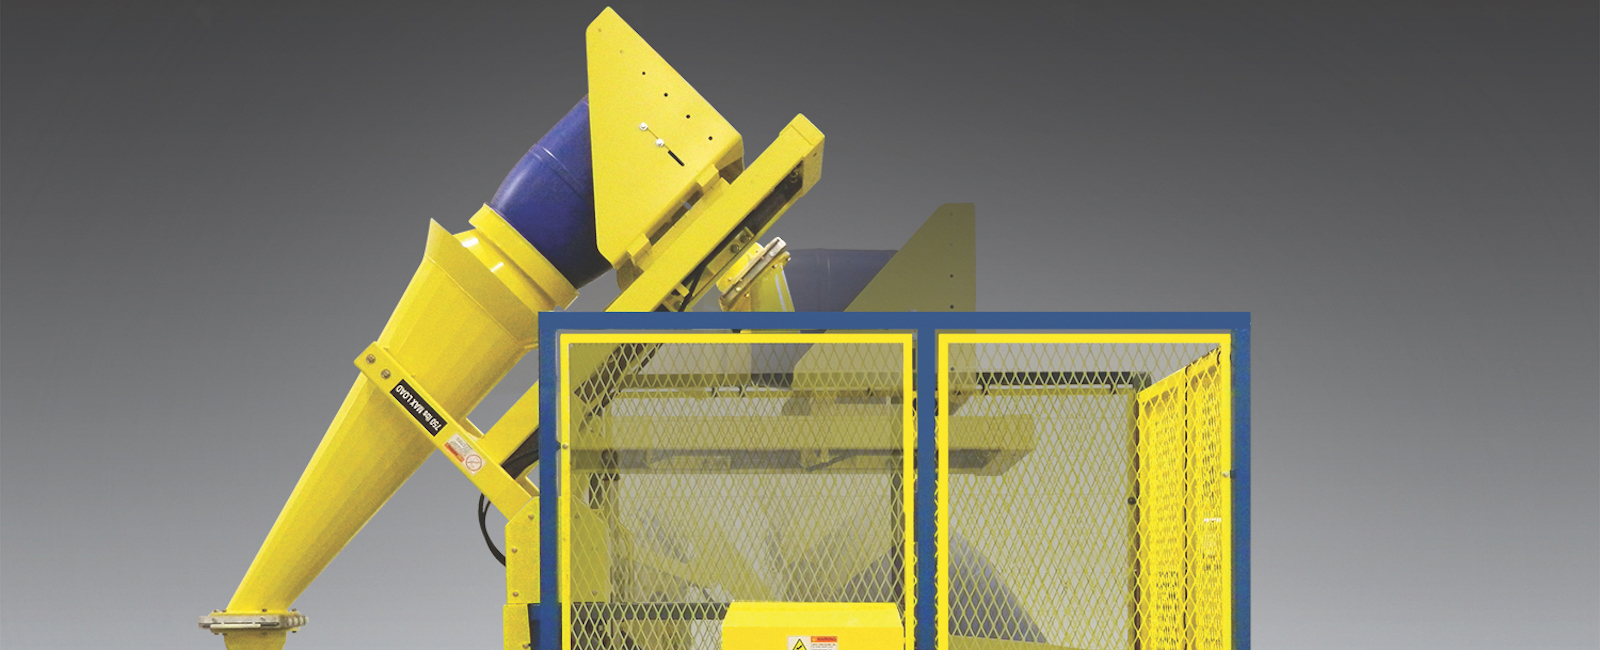 Flexicon: Drum Tipper mates with low-height Receiving Vessels